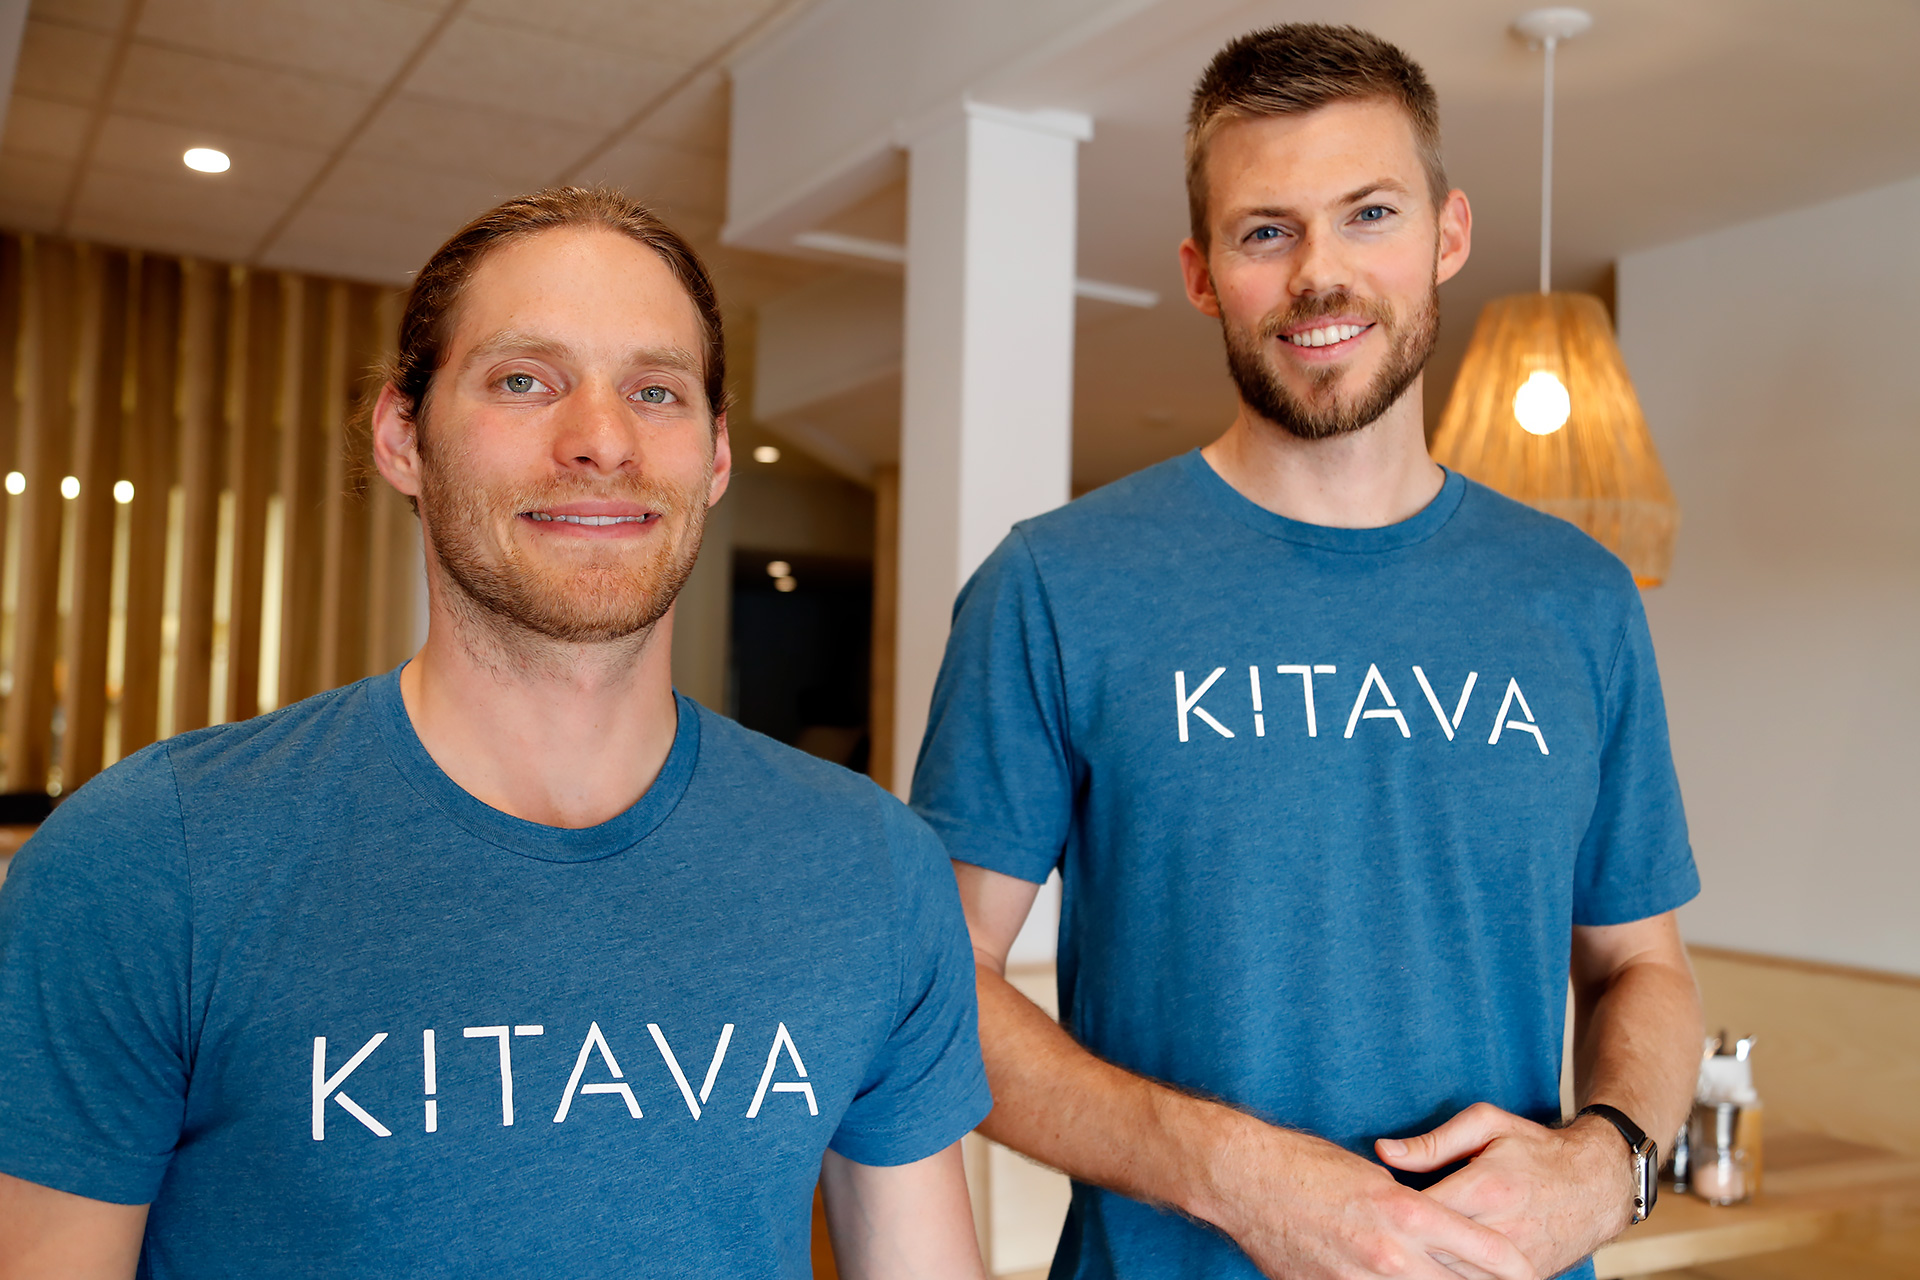 Bryan Tublin (L) and Jeff Nobbs (R), owners of Kitava Kitchen.